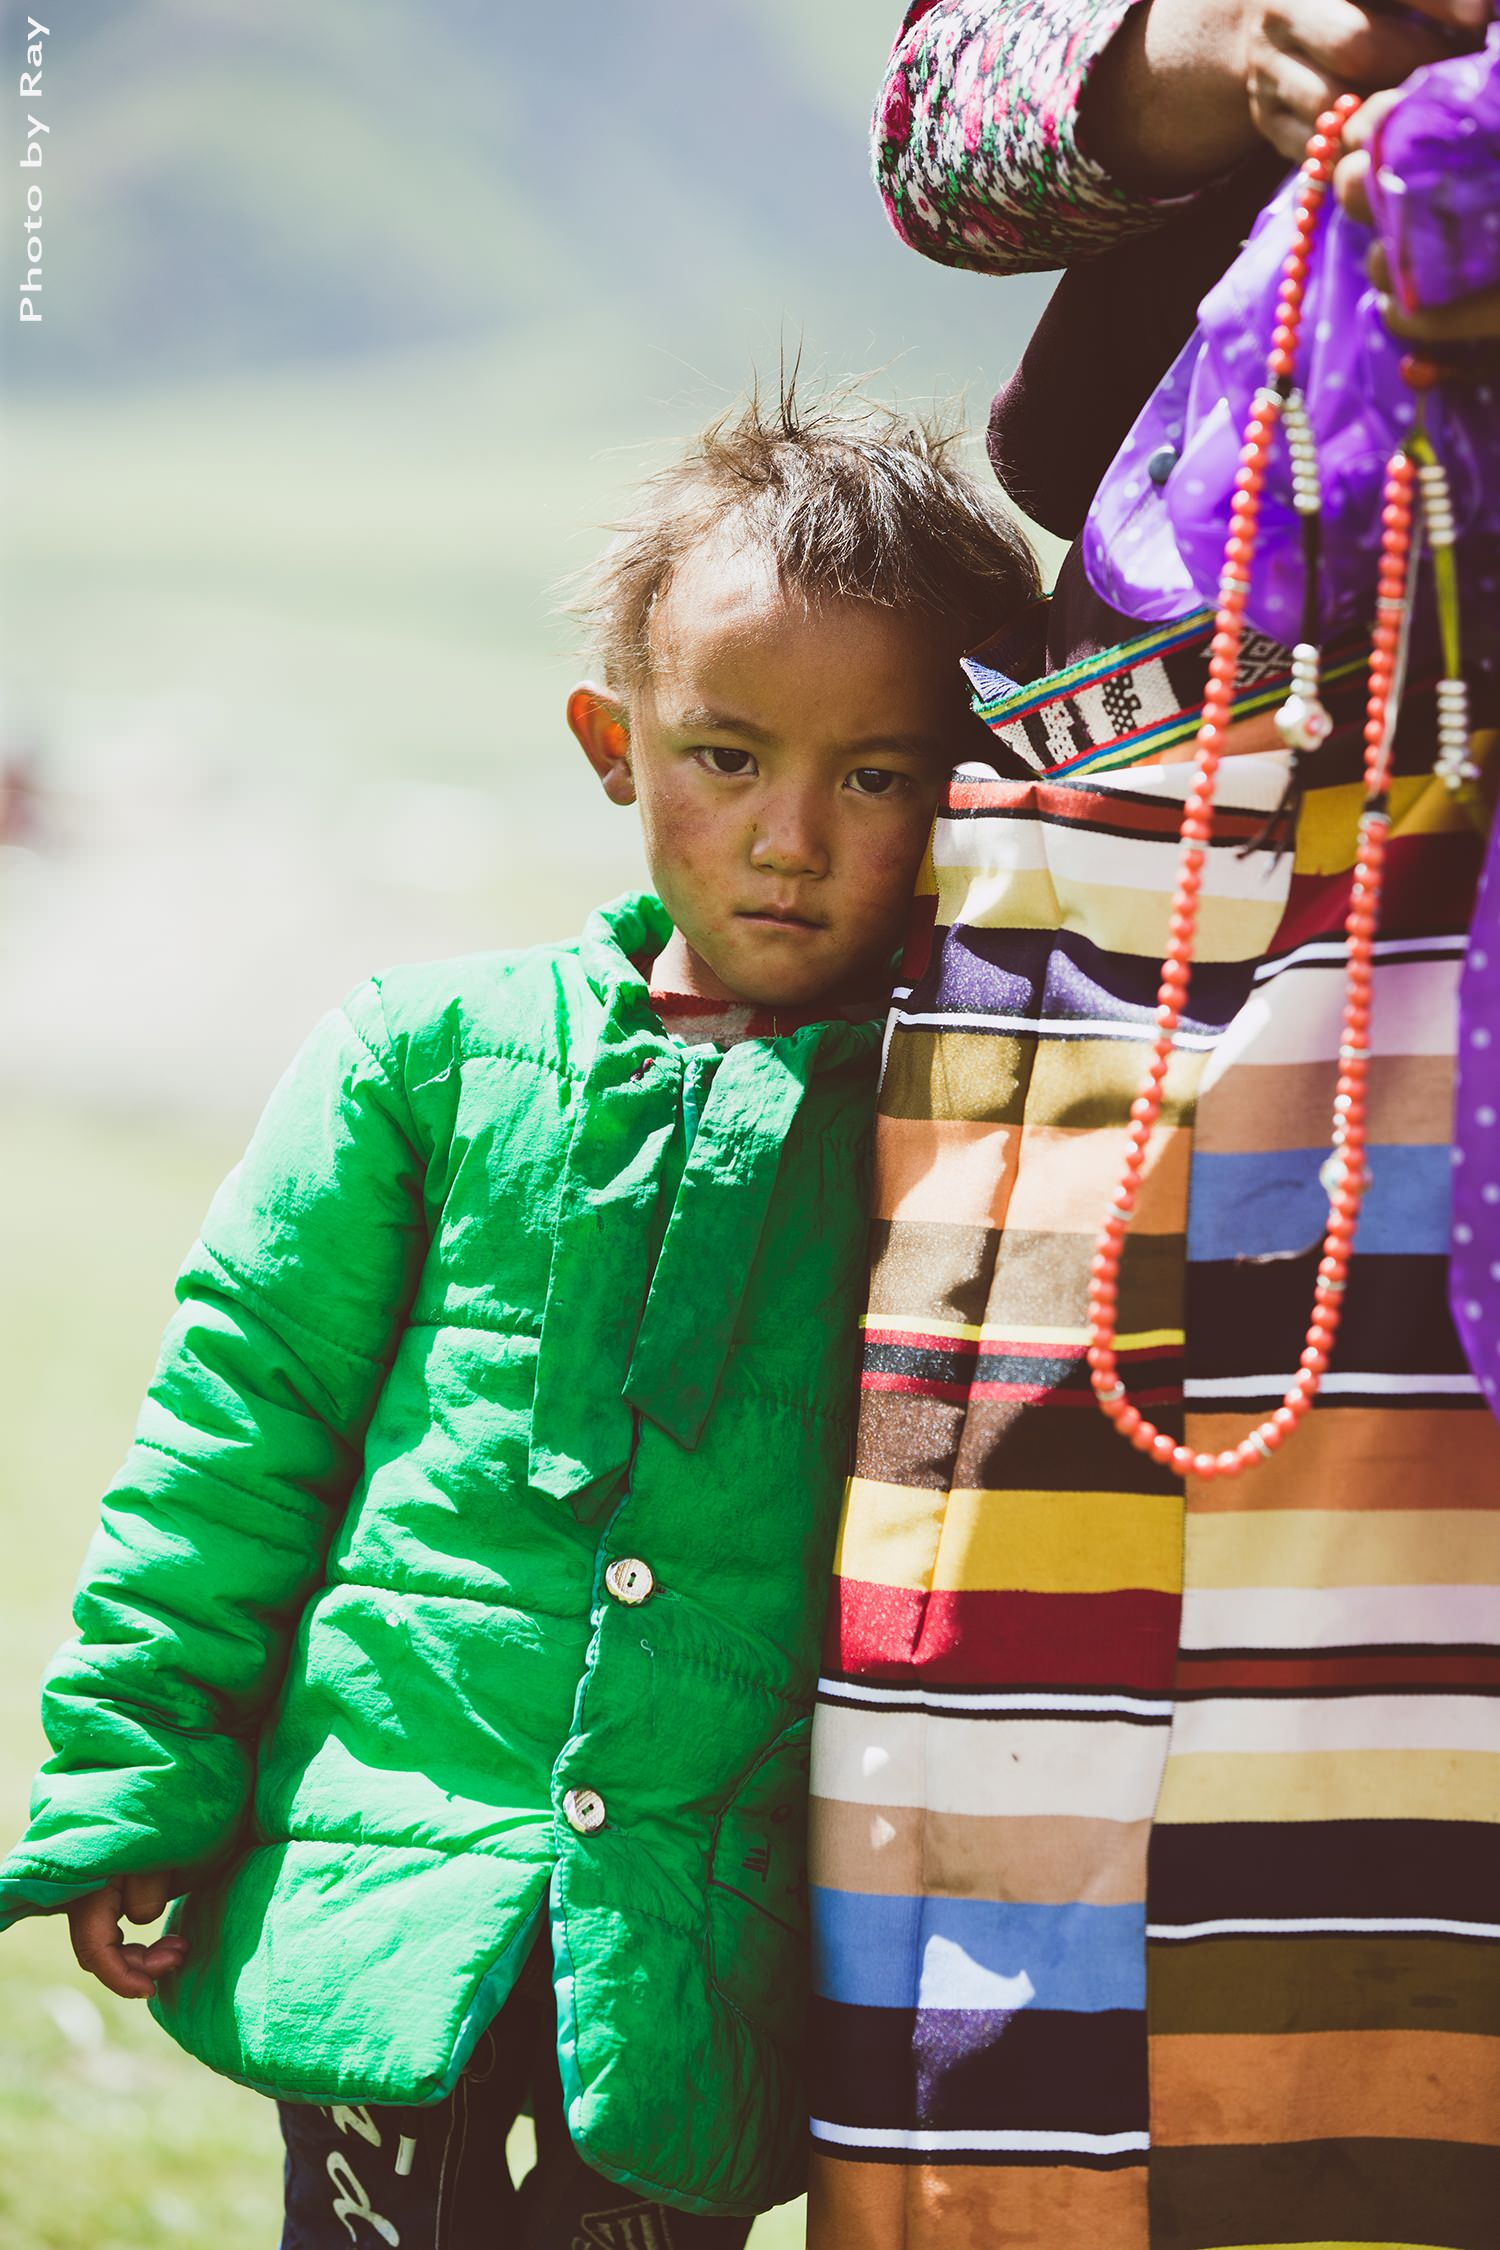 Tibet little boy